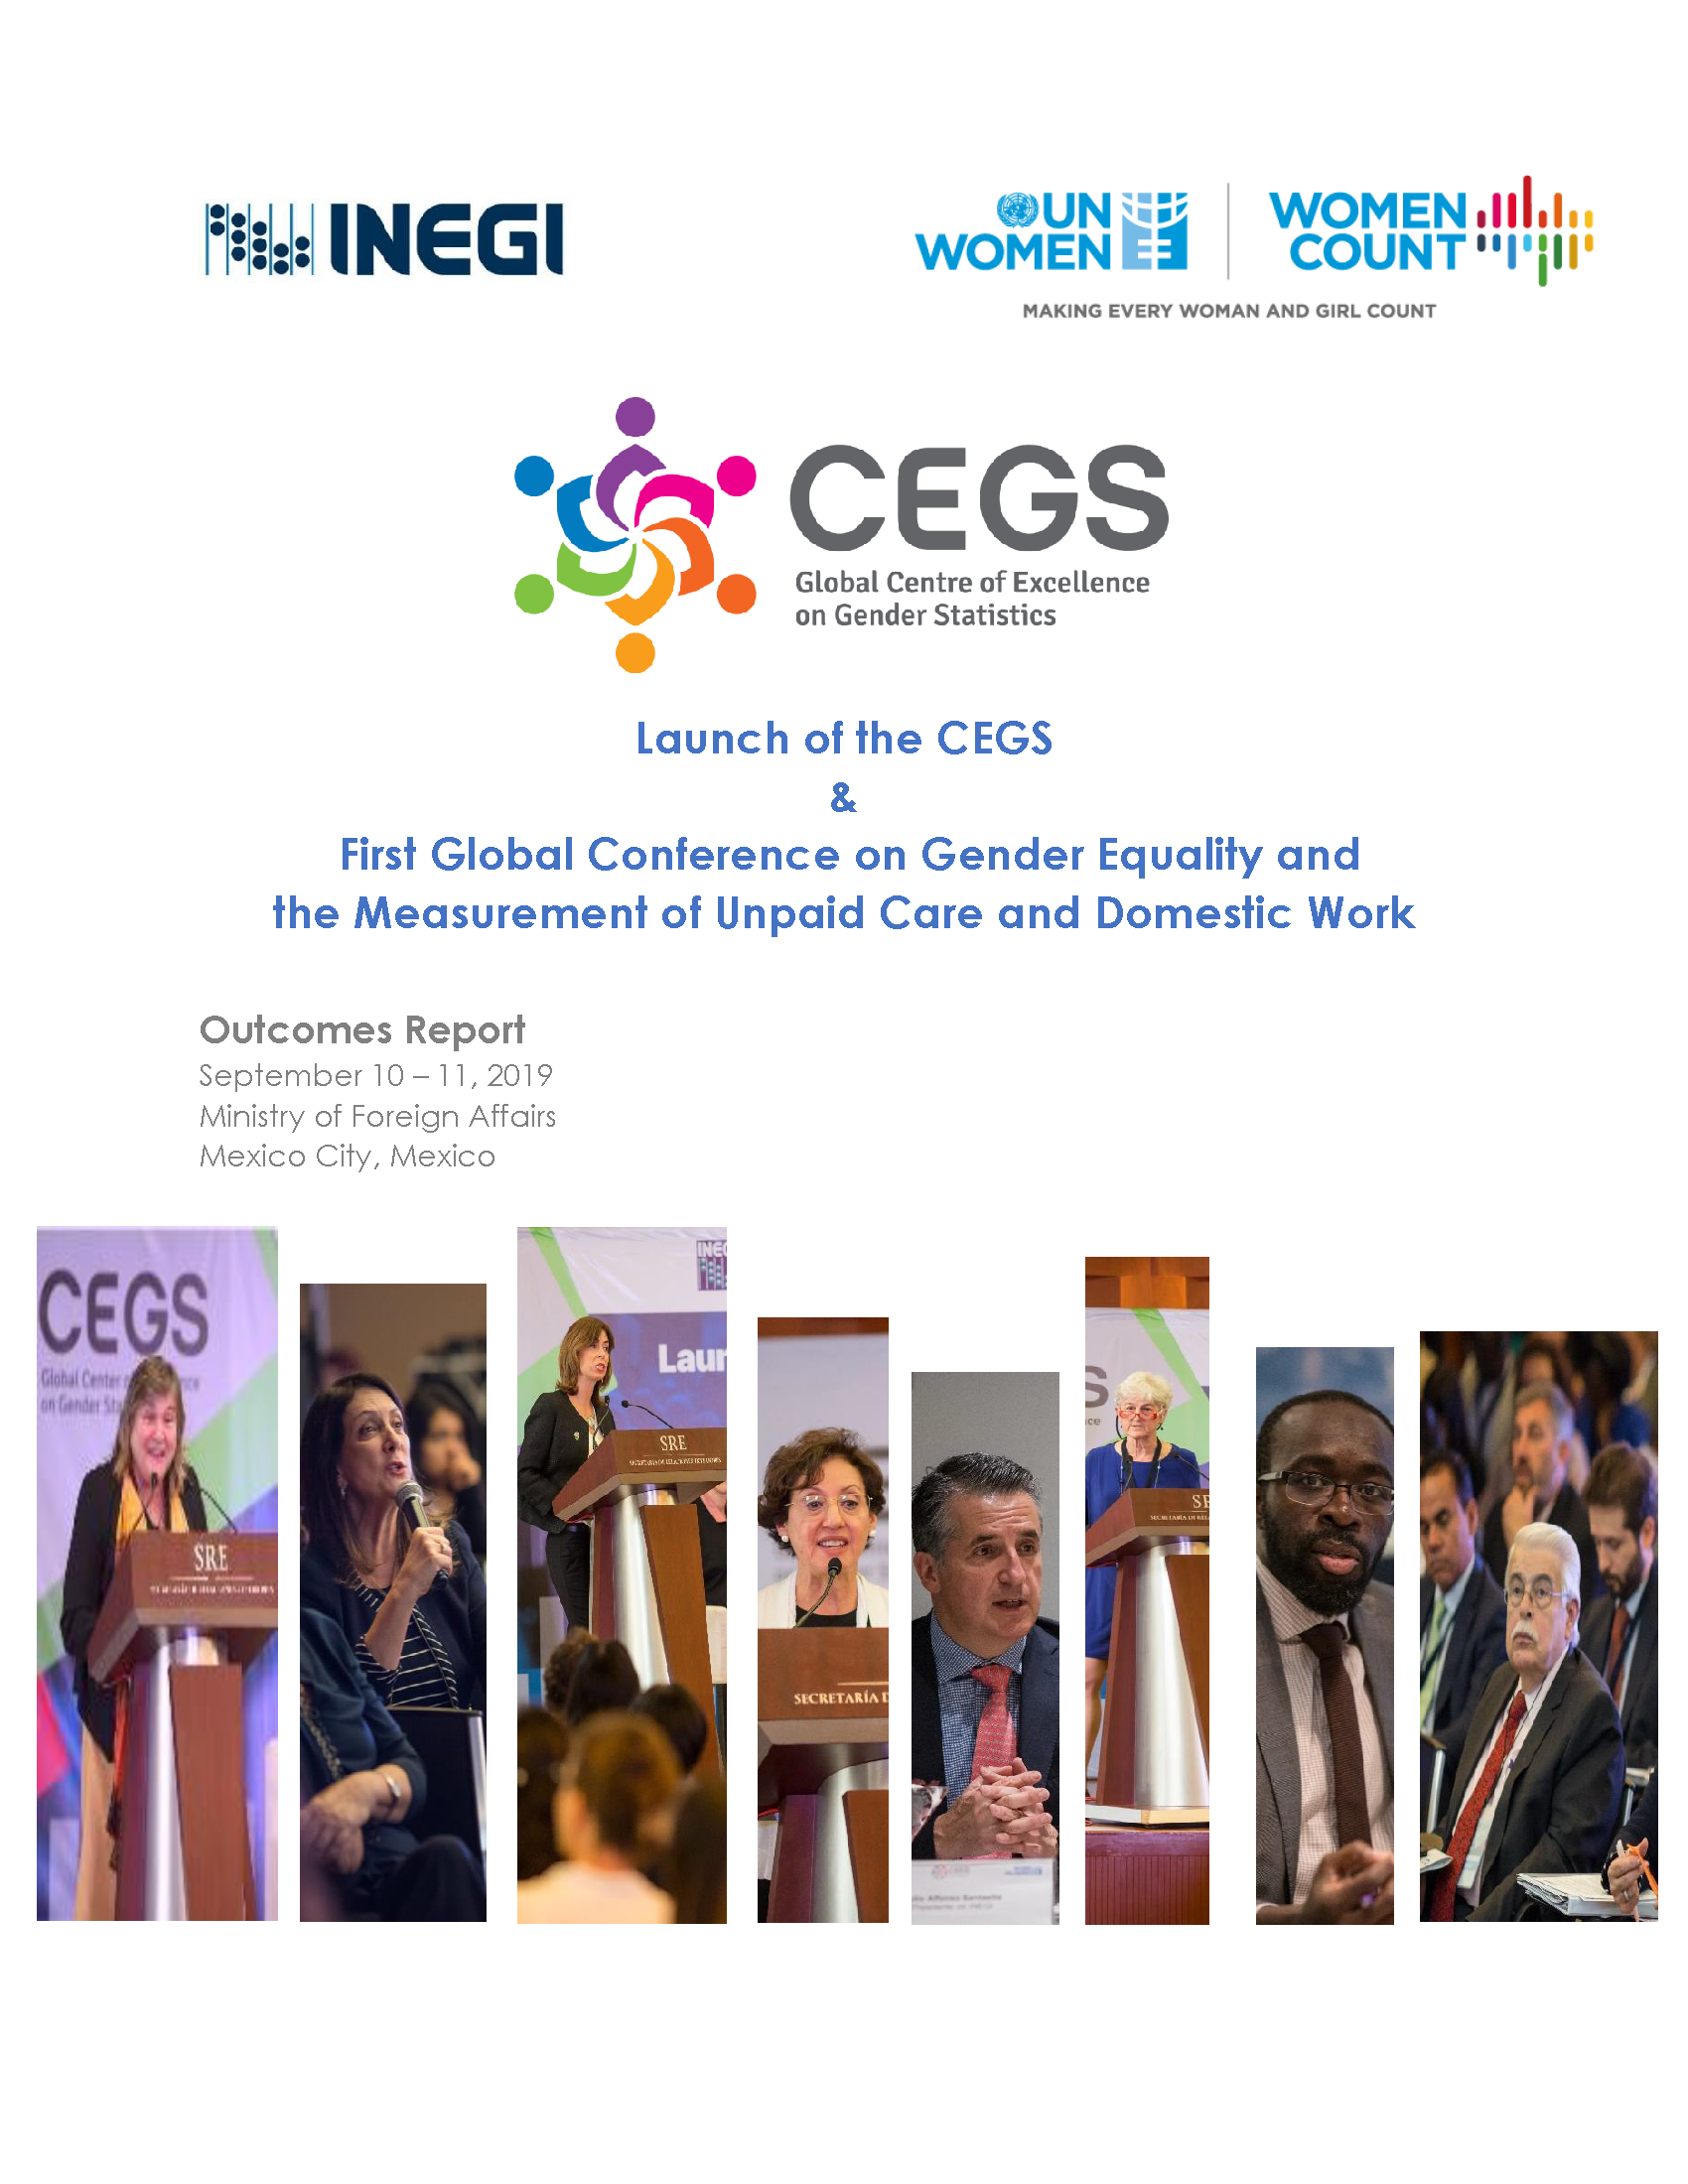 Outcome Report: CEGS Launch and First Global Conference on Gender Equality and the Measurement of Unpaid Care and Domestic Work